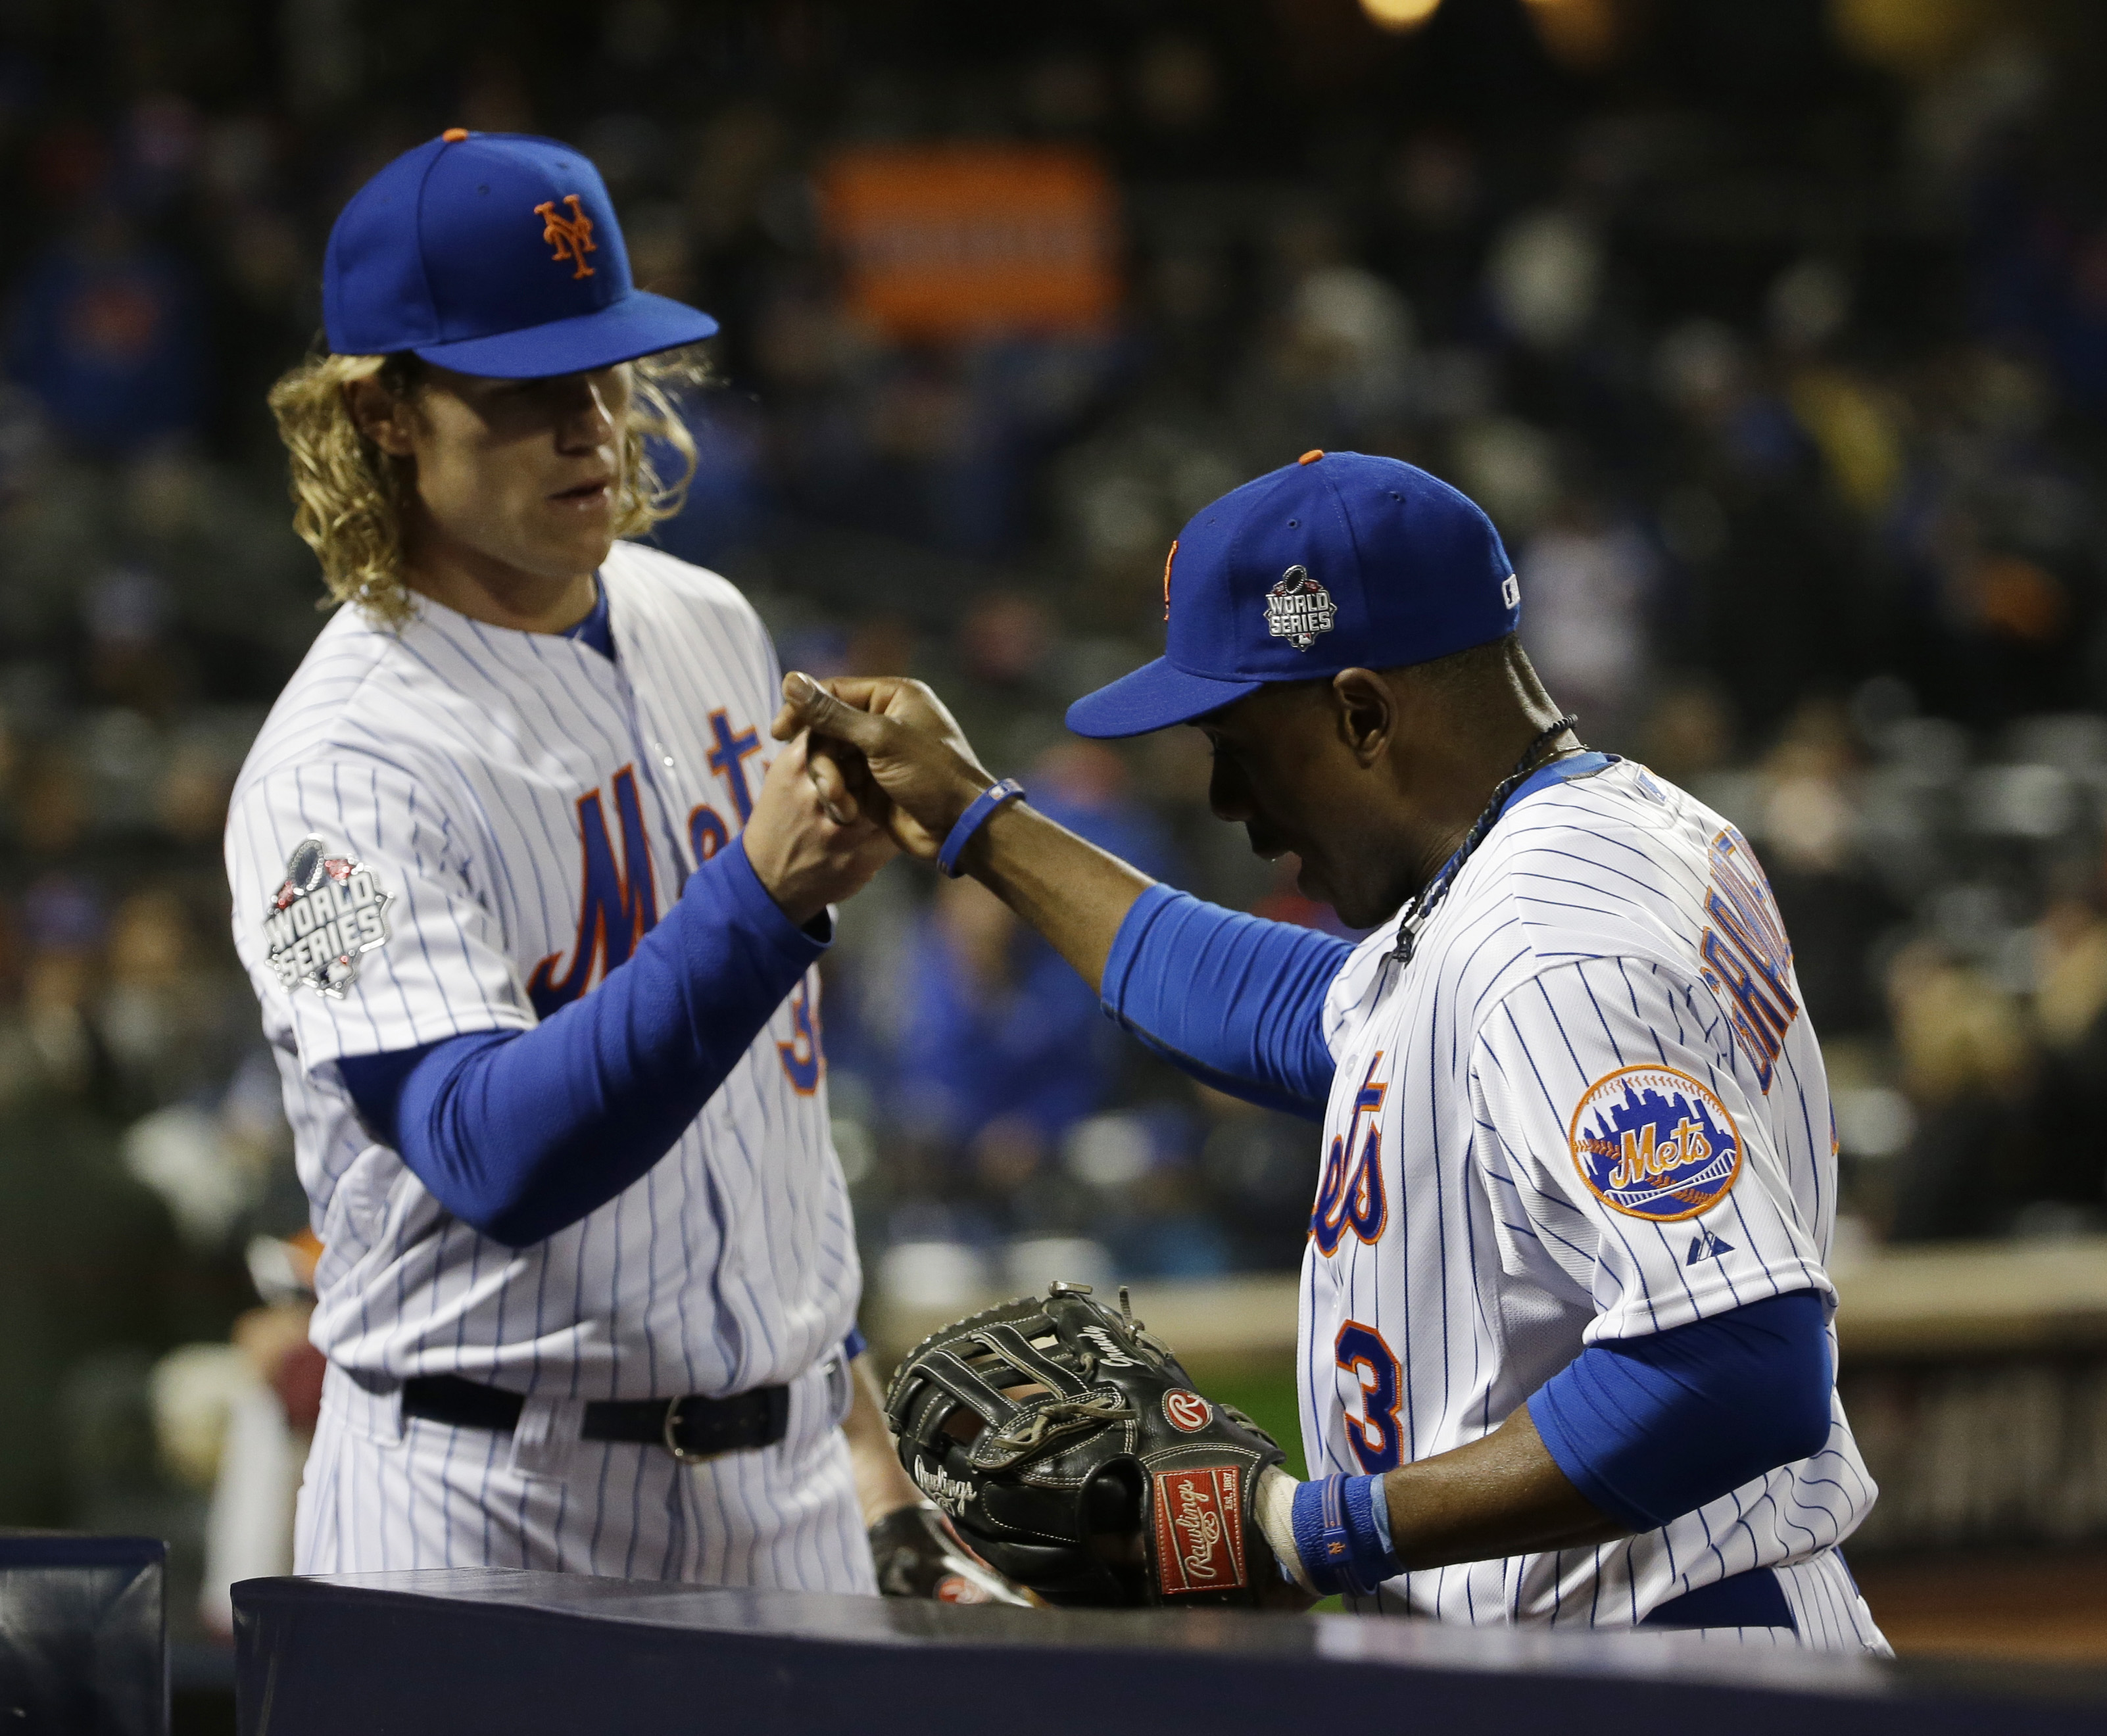 New York Mets pitcher Noah Syndergaard congratulates teammate Curtis Granderson after a catch during the fifth inning of Game 3 of the Major League Baseball World Series against the Kansas City Royals Friday, Oct. 30, 2015, in New York. (AP Photo/David J.